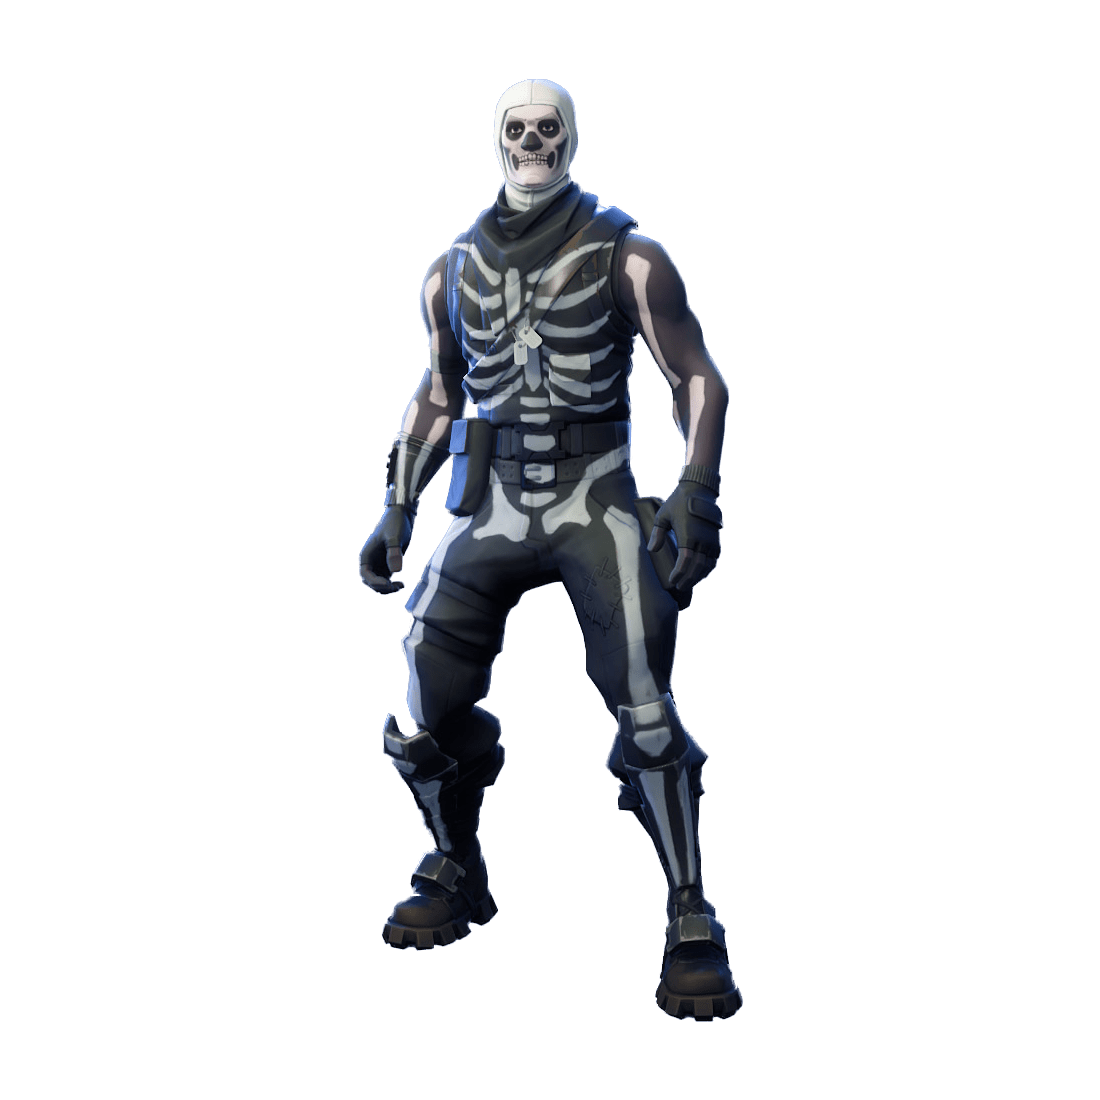 Skull trooper clipart face. Fortnite skin www picturesso